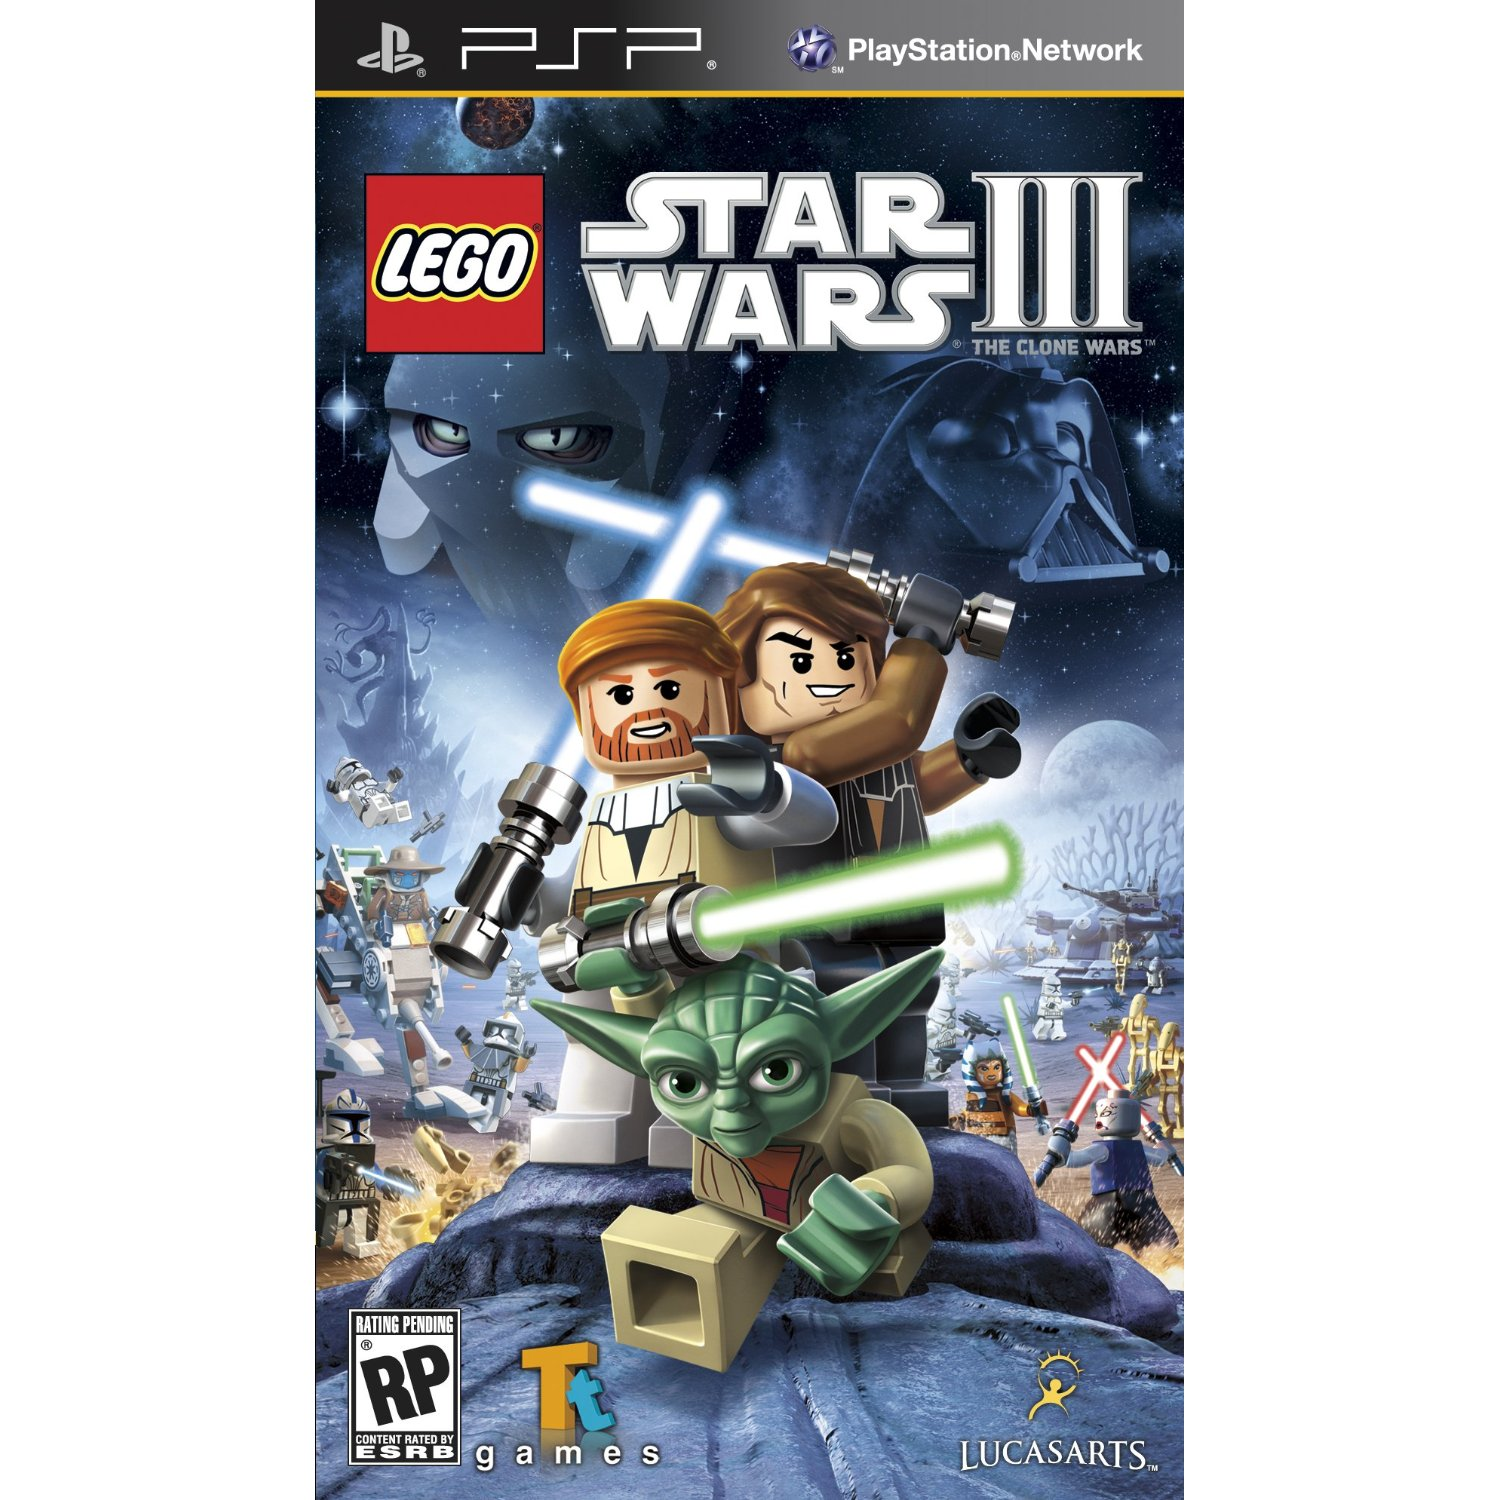 Lego star wars iii the clone wars psp game insights